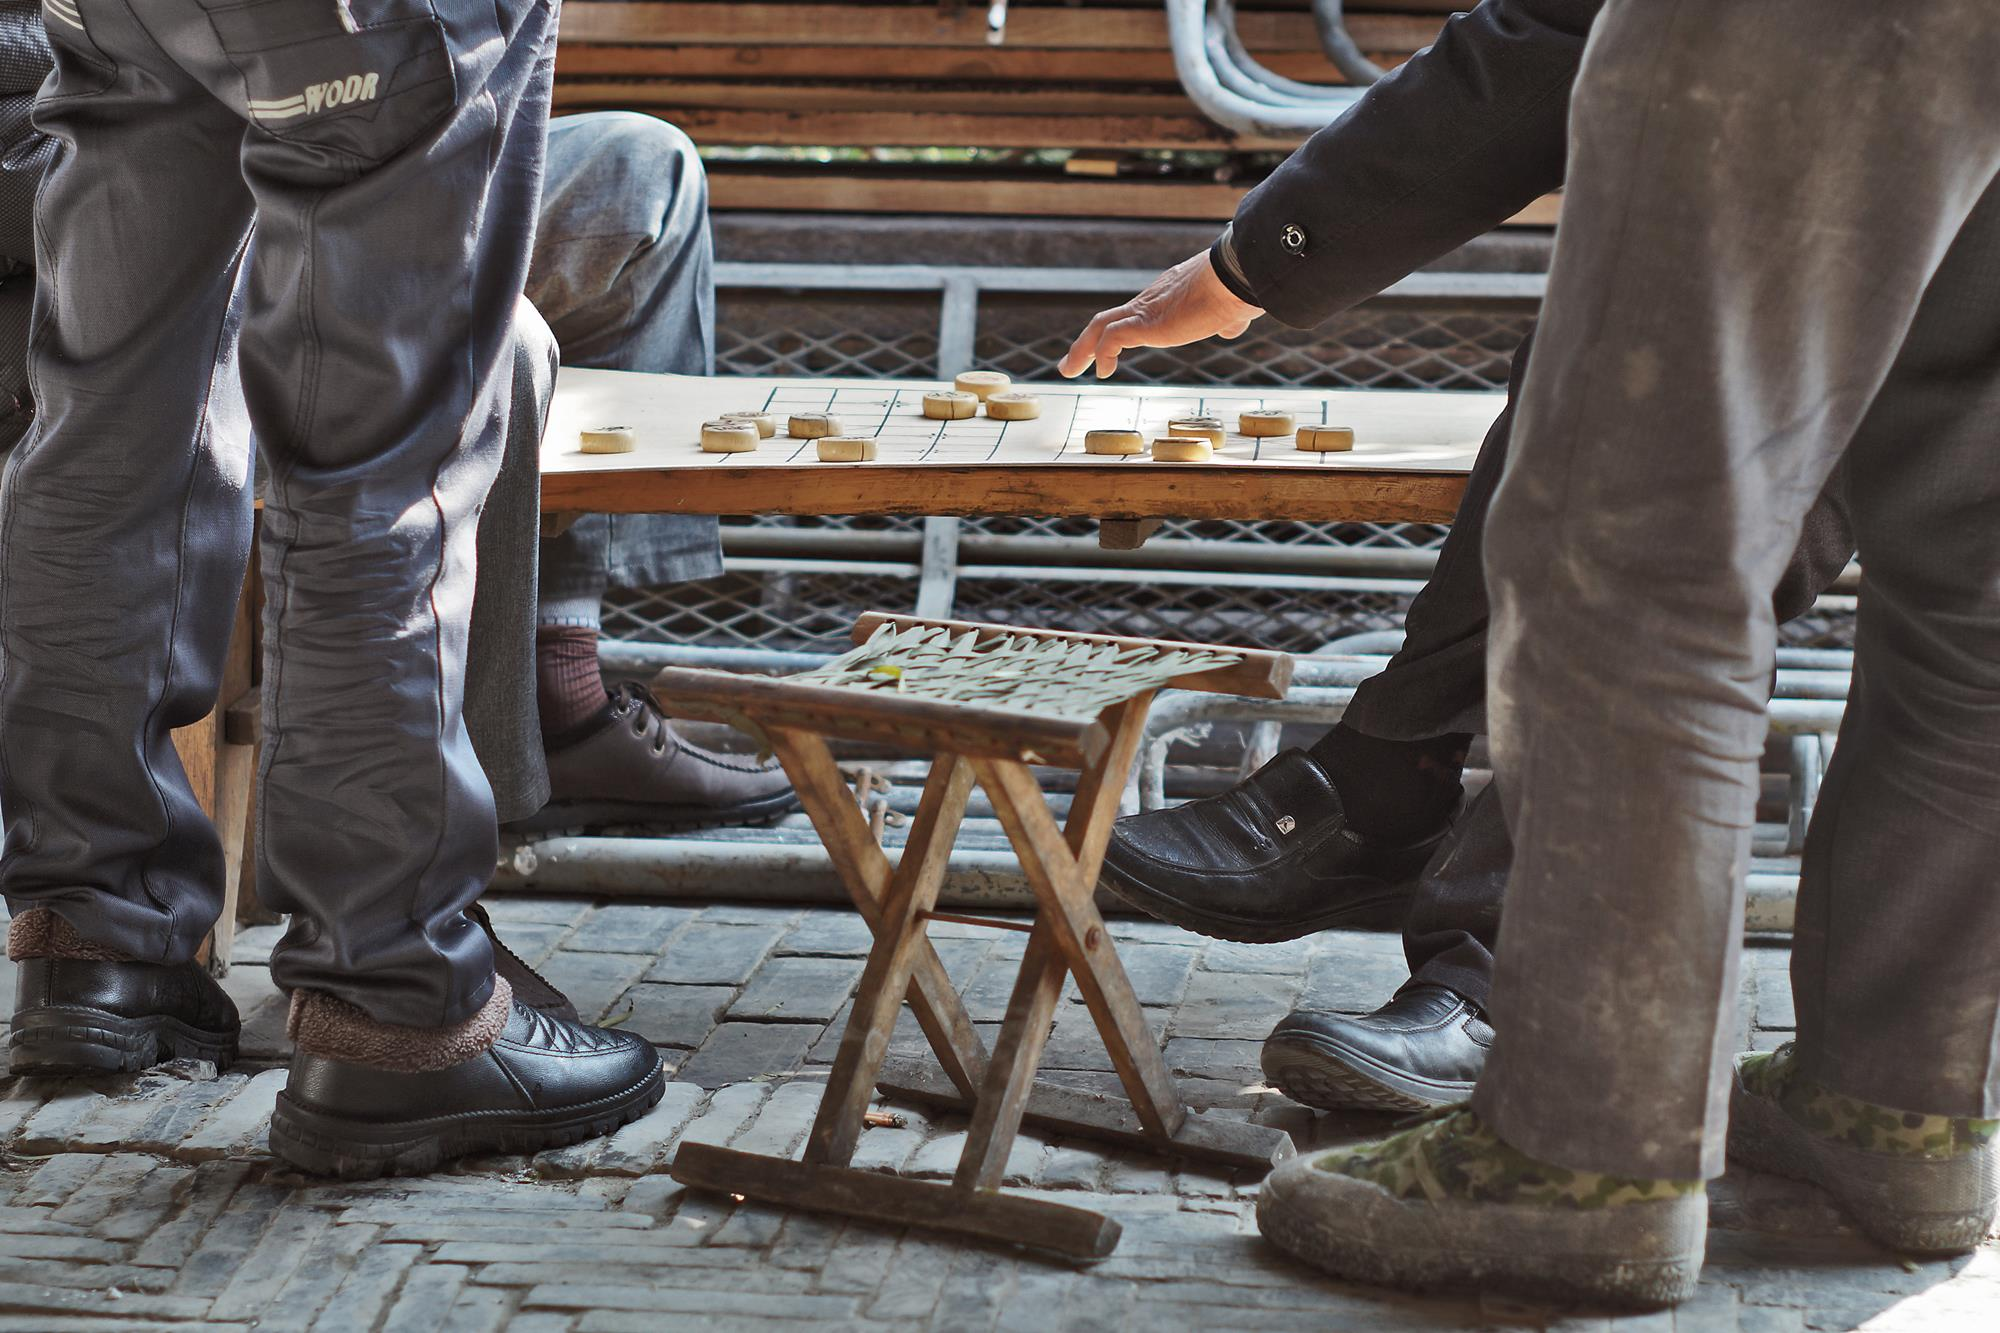 playing chinese chess in the street